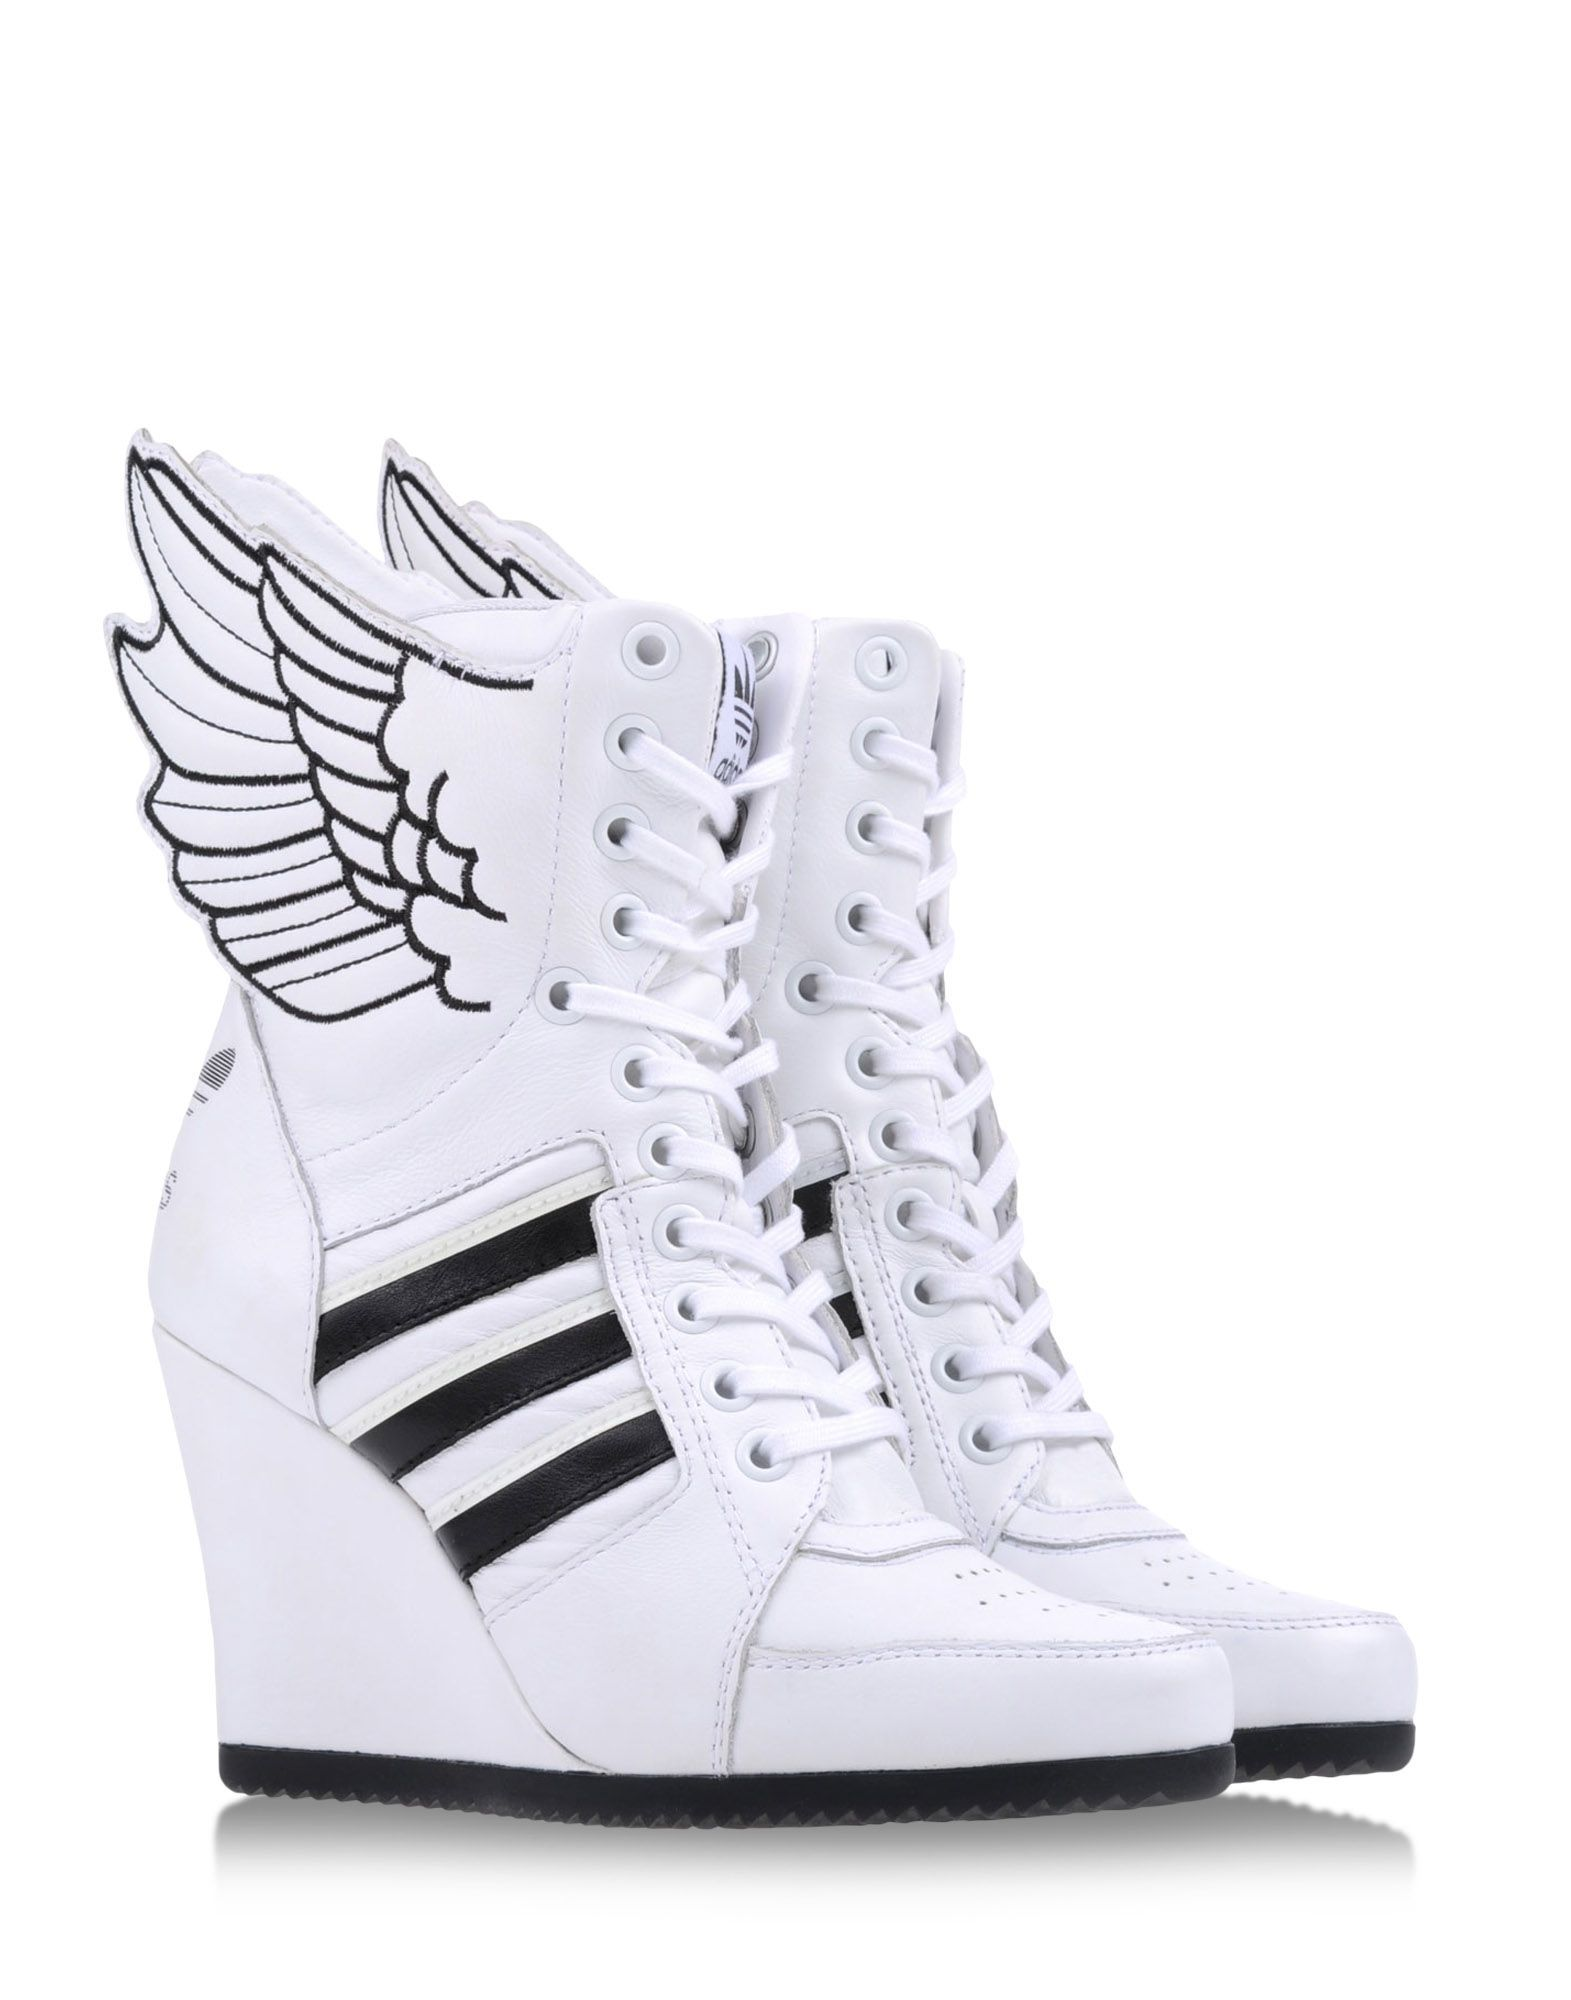 Adidas by Jeremy Scott High-tops  3bff497a4